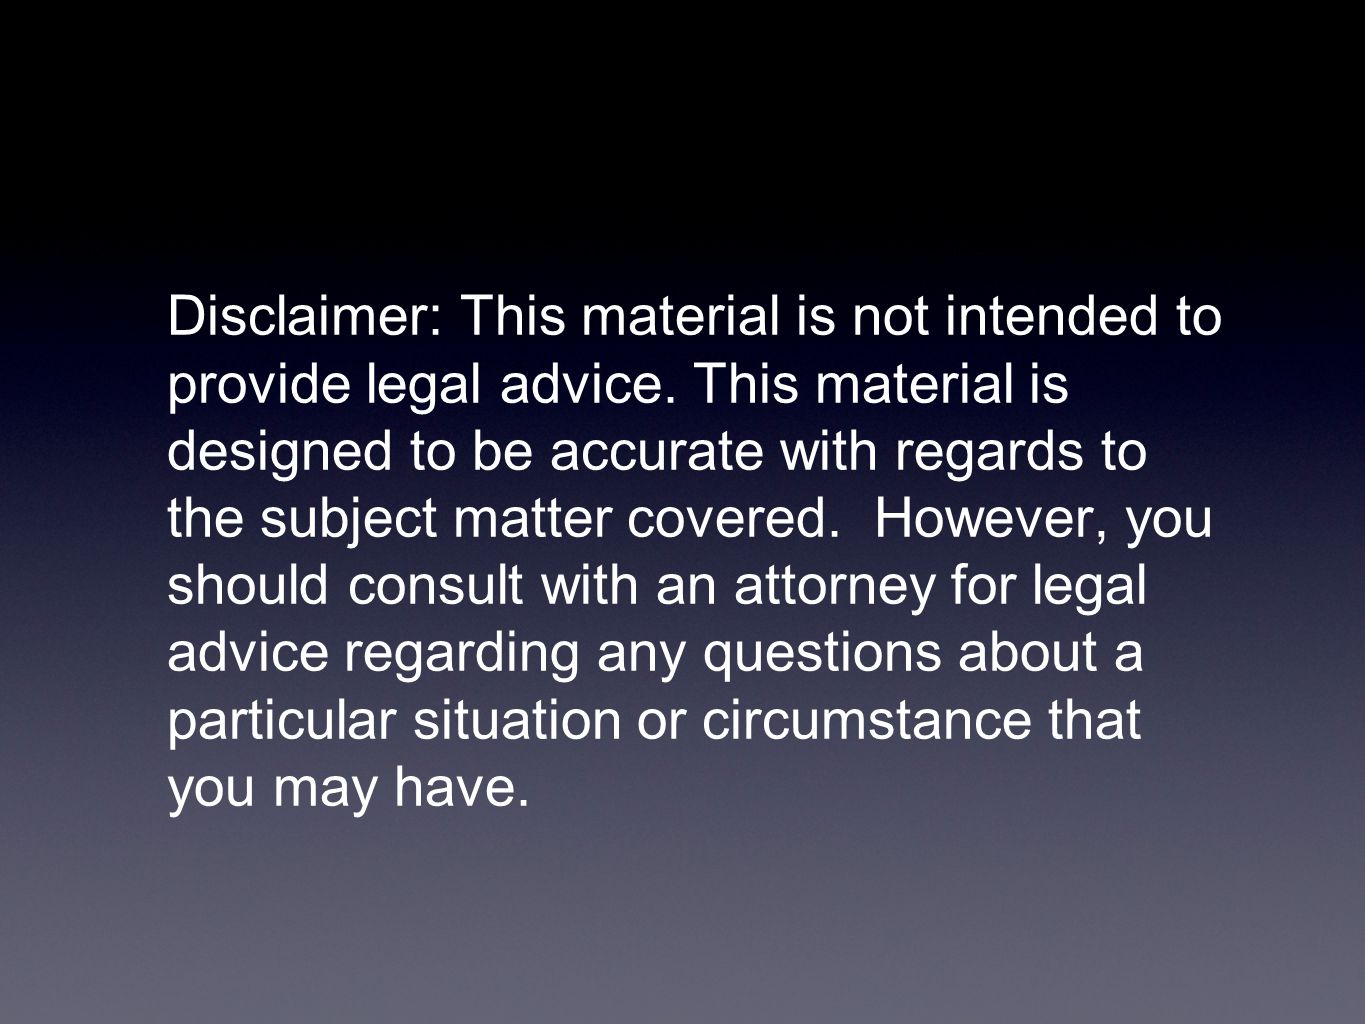 Disclaimer: This material is not intended to provide legal advice. This material is designed to be accurate with regards to the subject matter covered